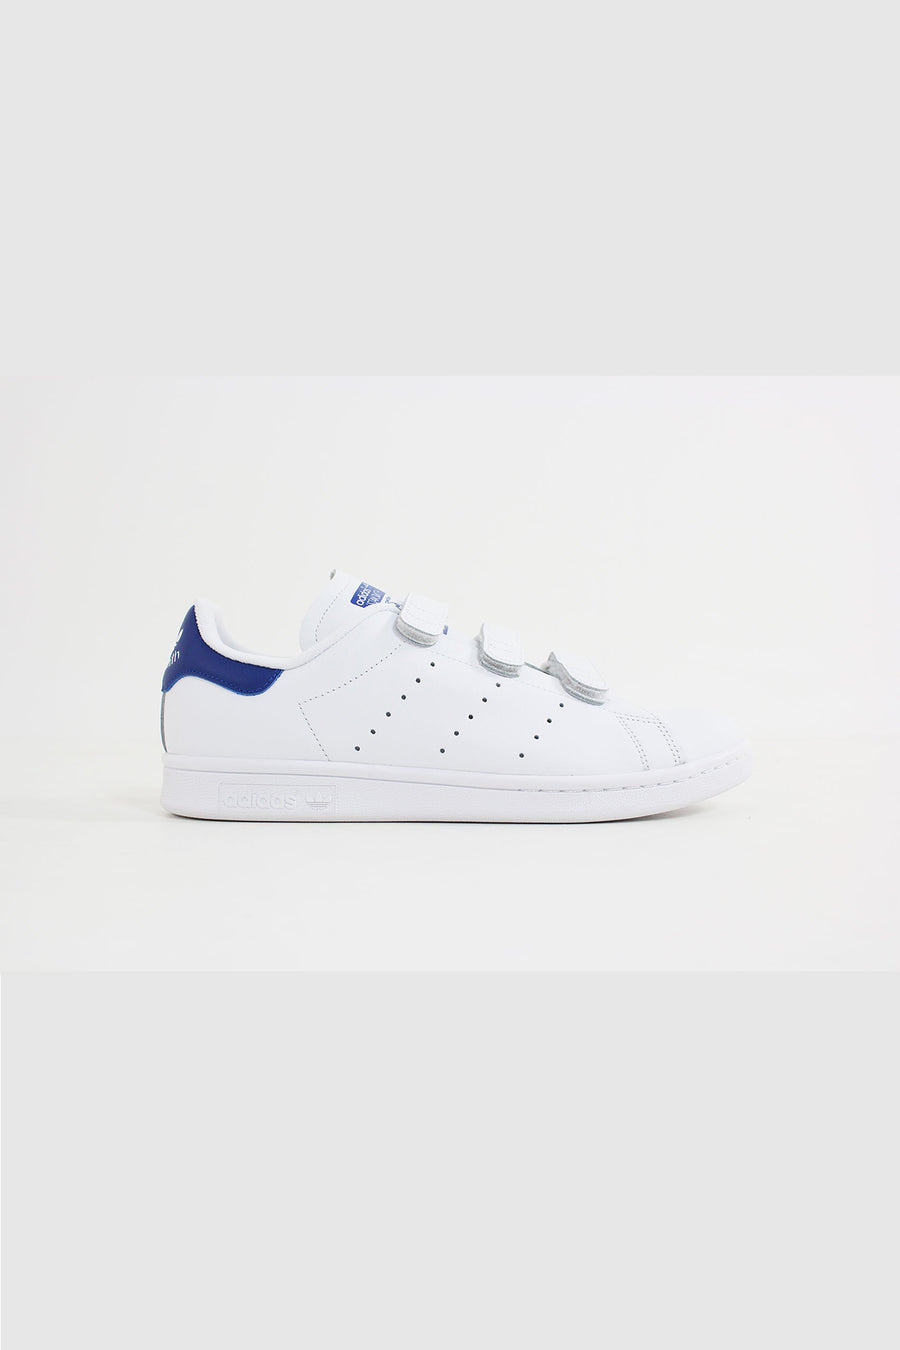 Adidas - Stan Smith CF Sneaker in Weiß S80042